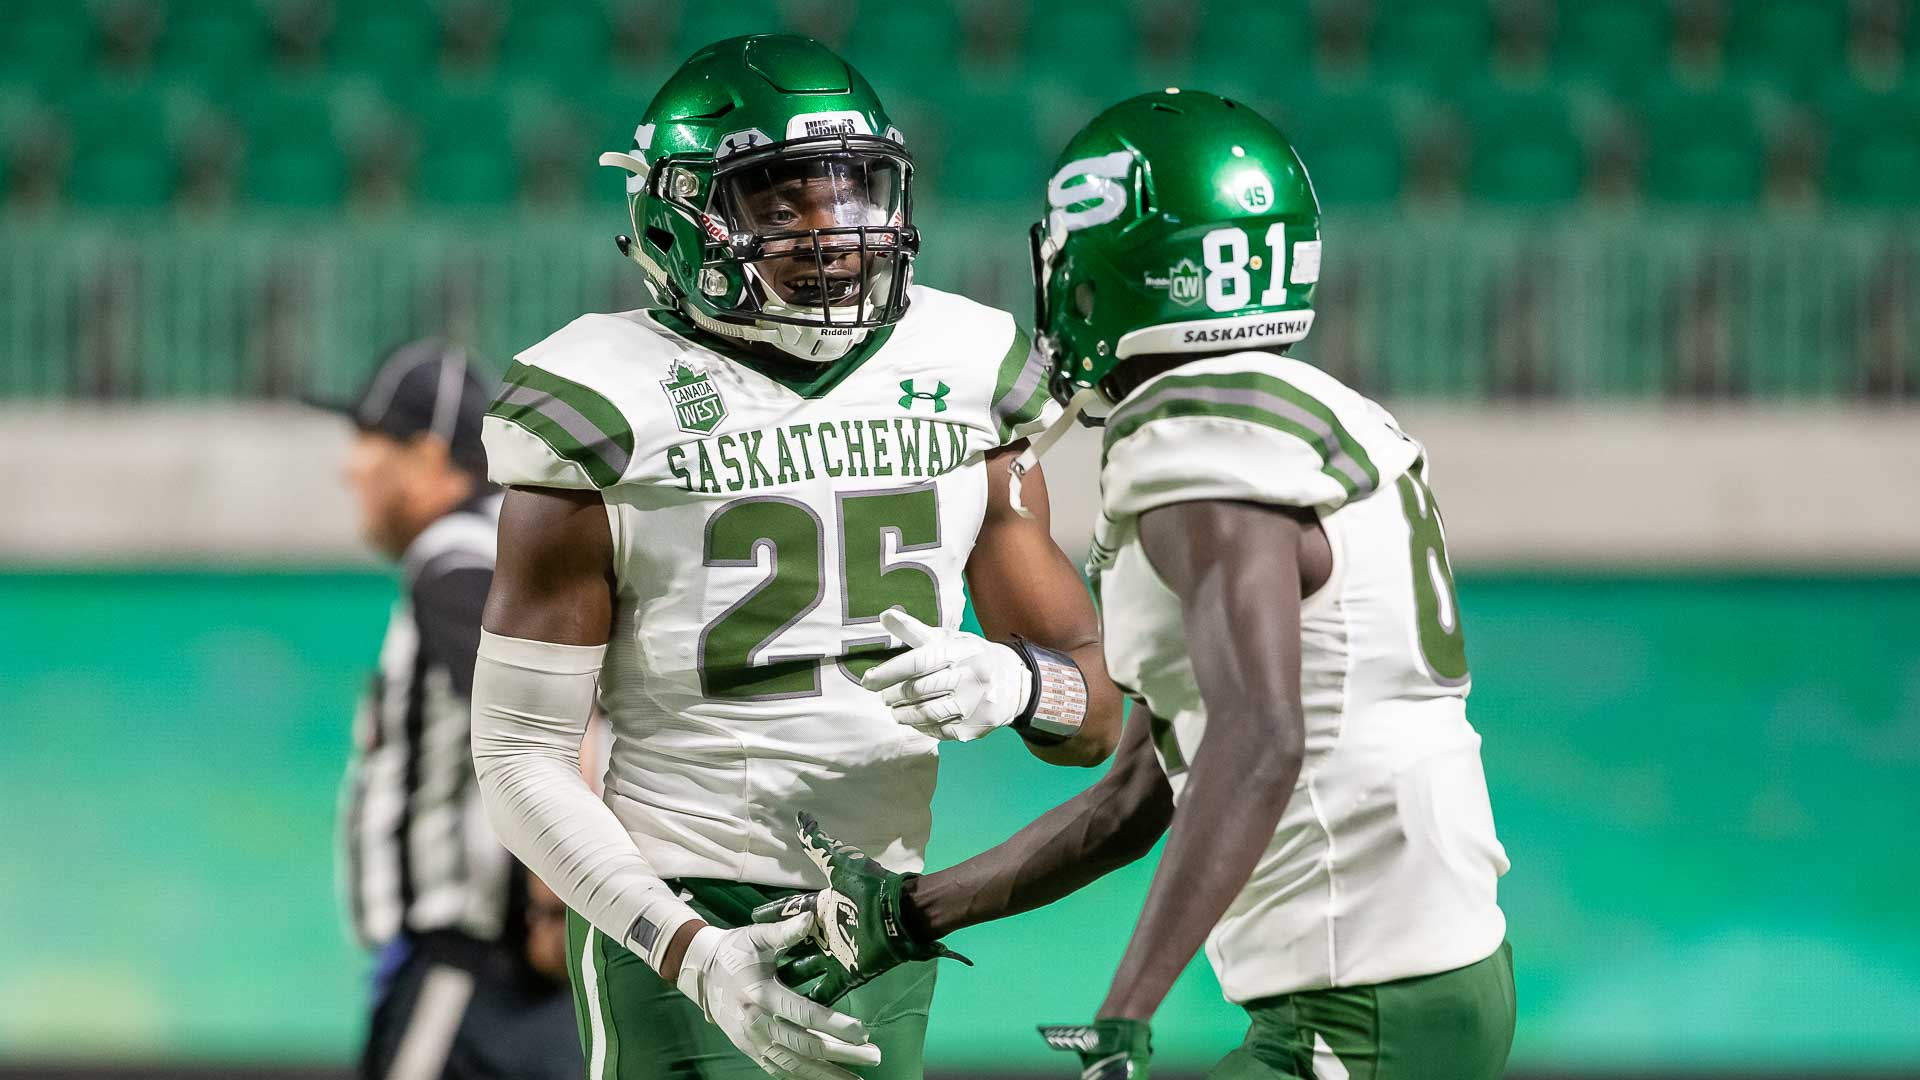 Future star wars: The CFL Draft is here